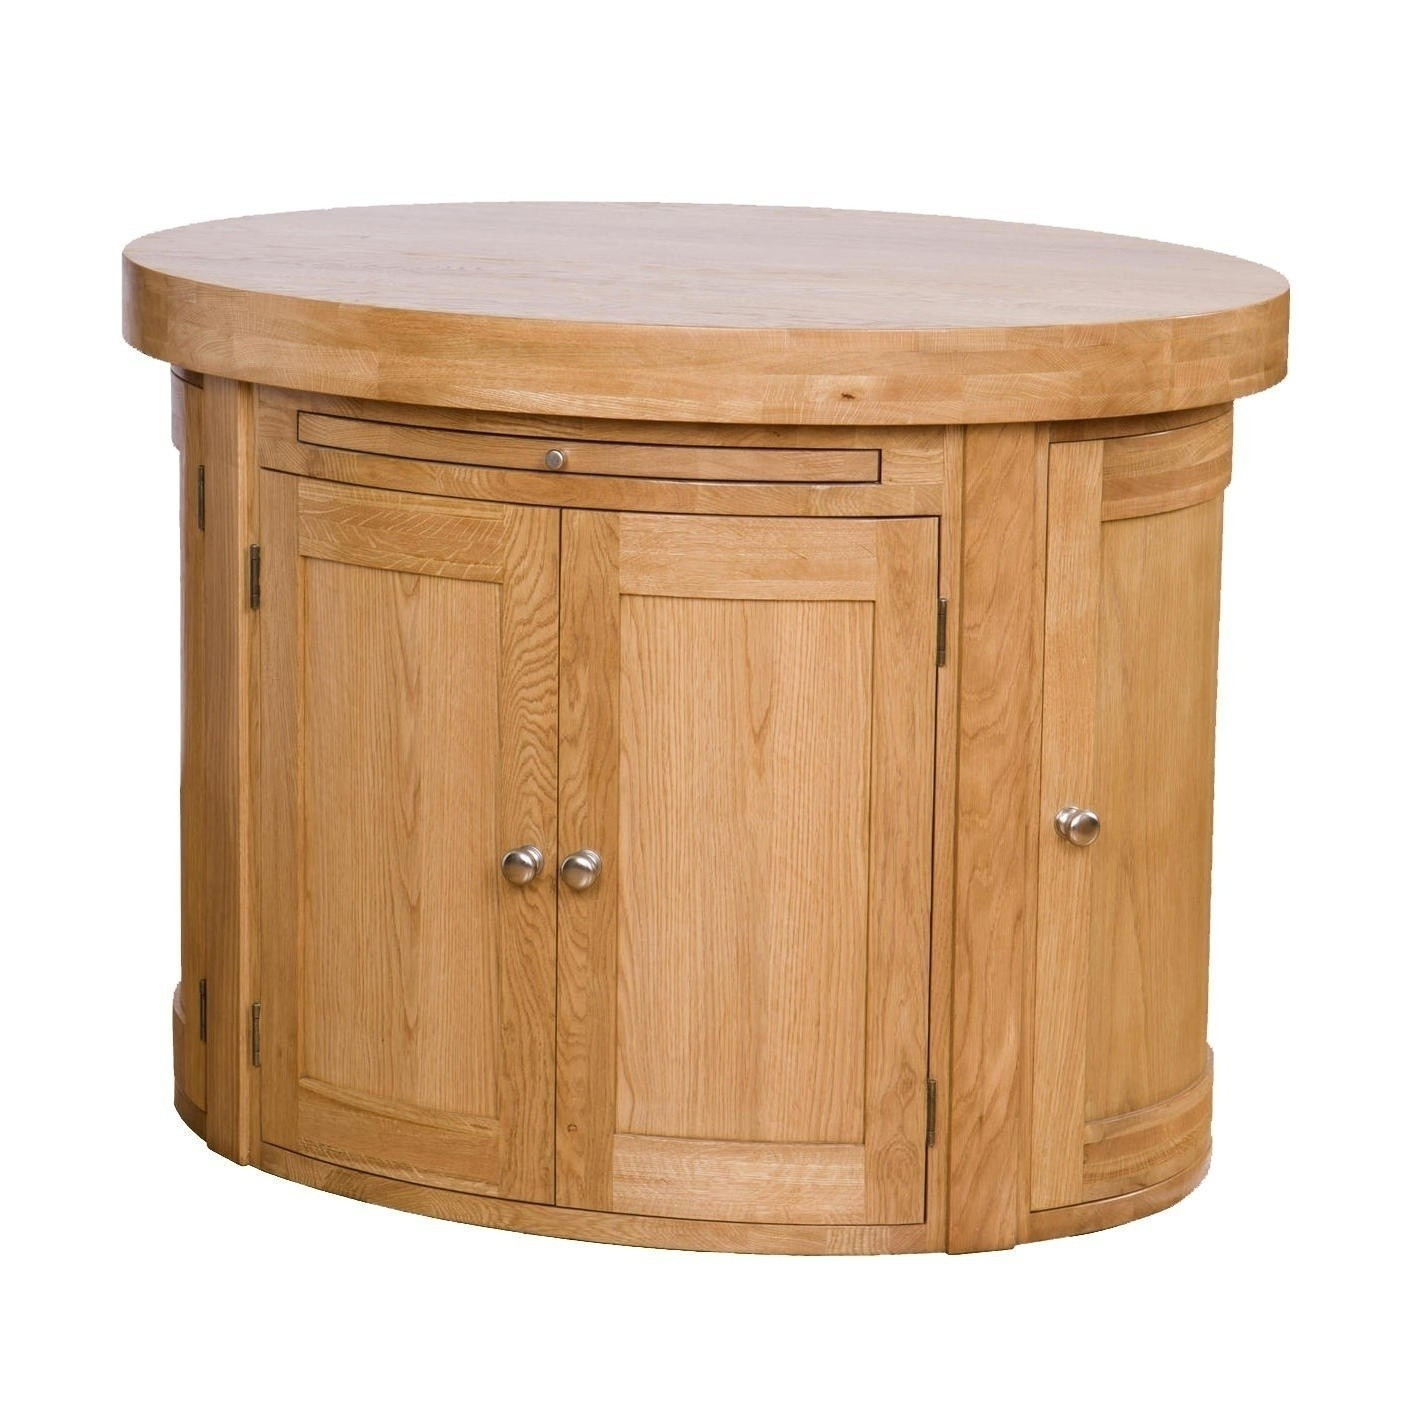 oval kitchen island with oak top oak kitchen island